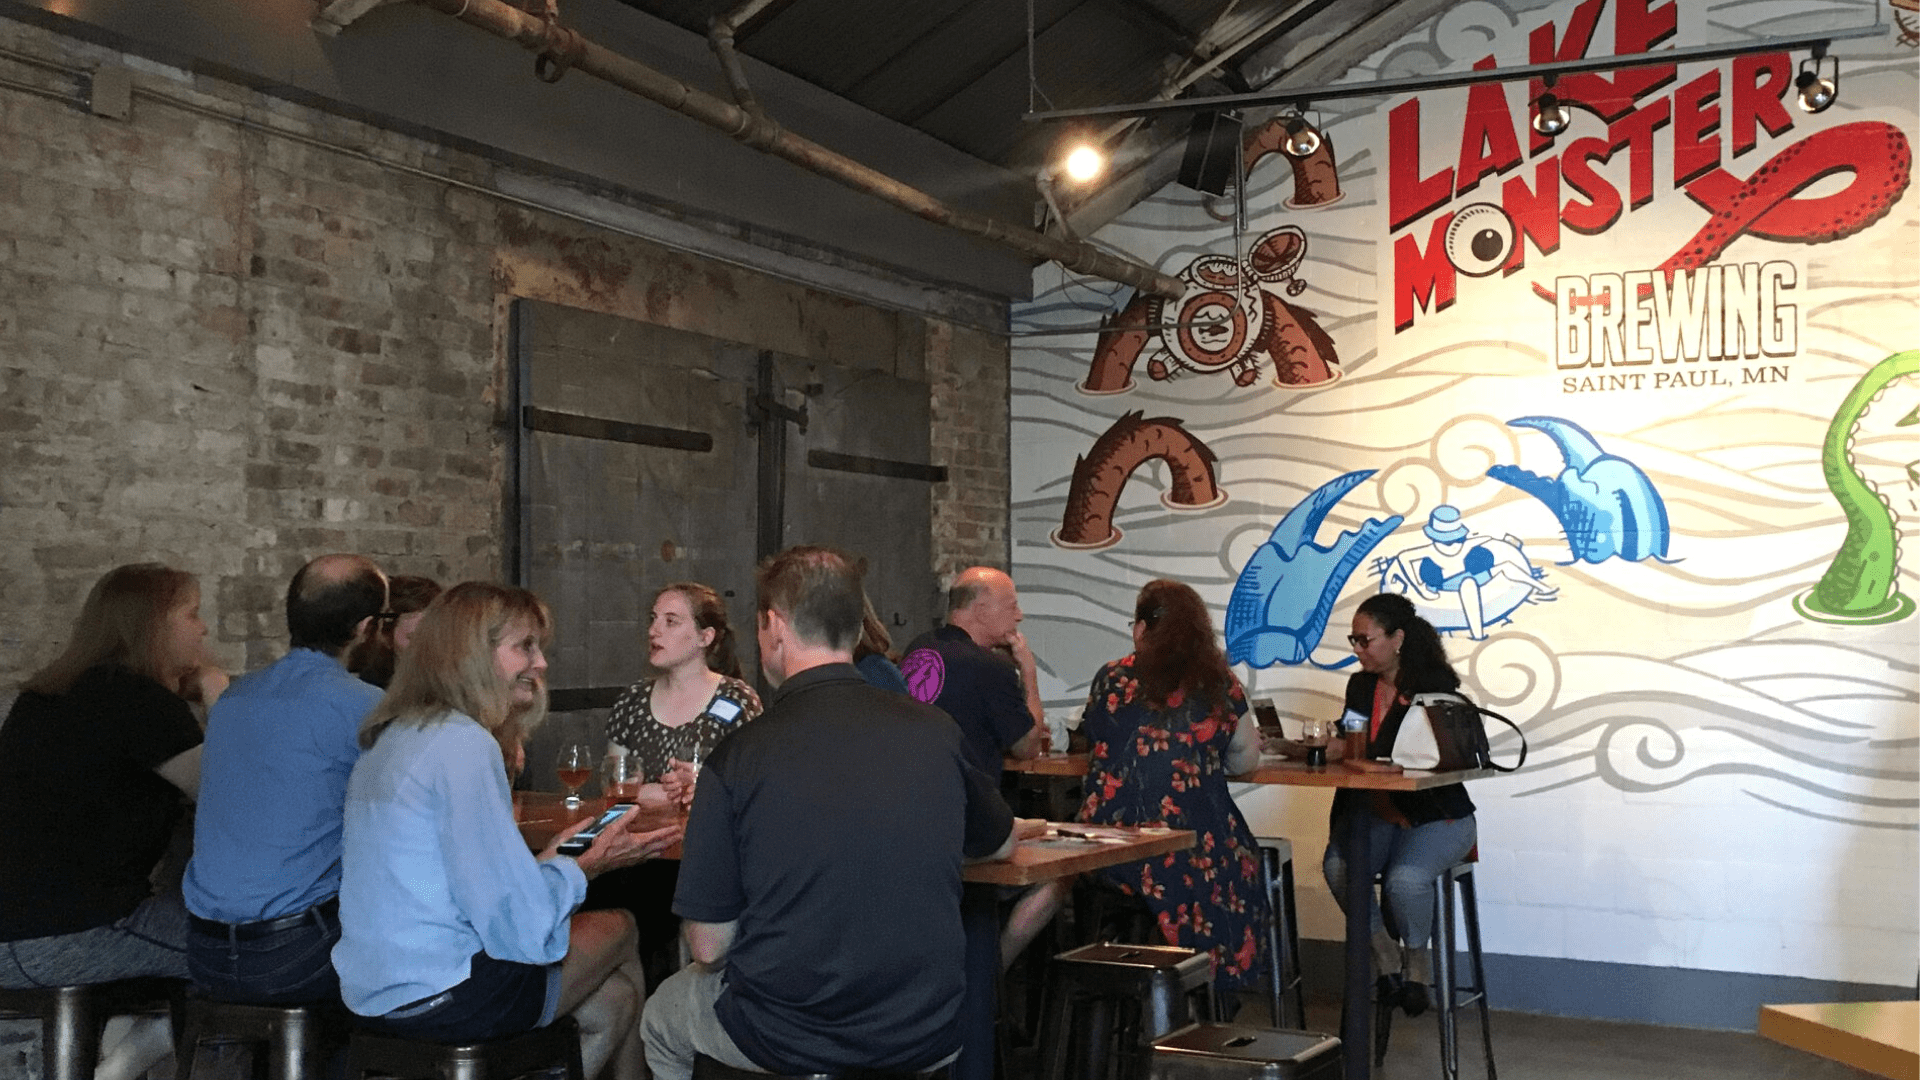 Happy hour attendees at Lake Monster Brewing